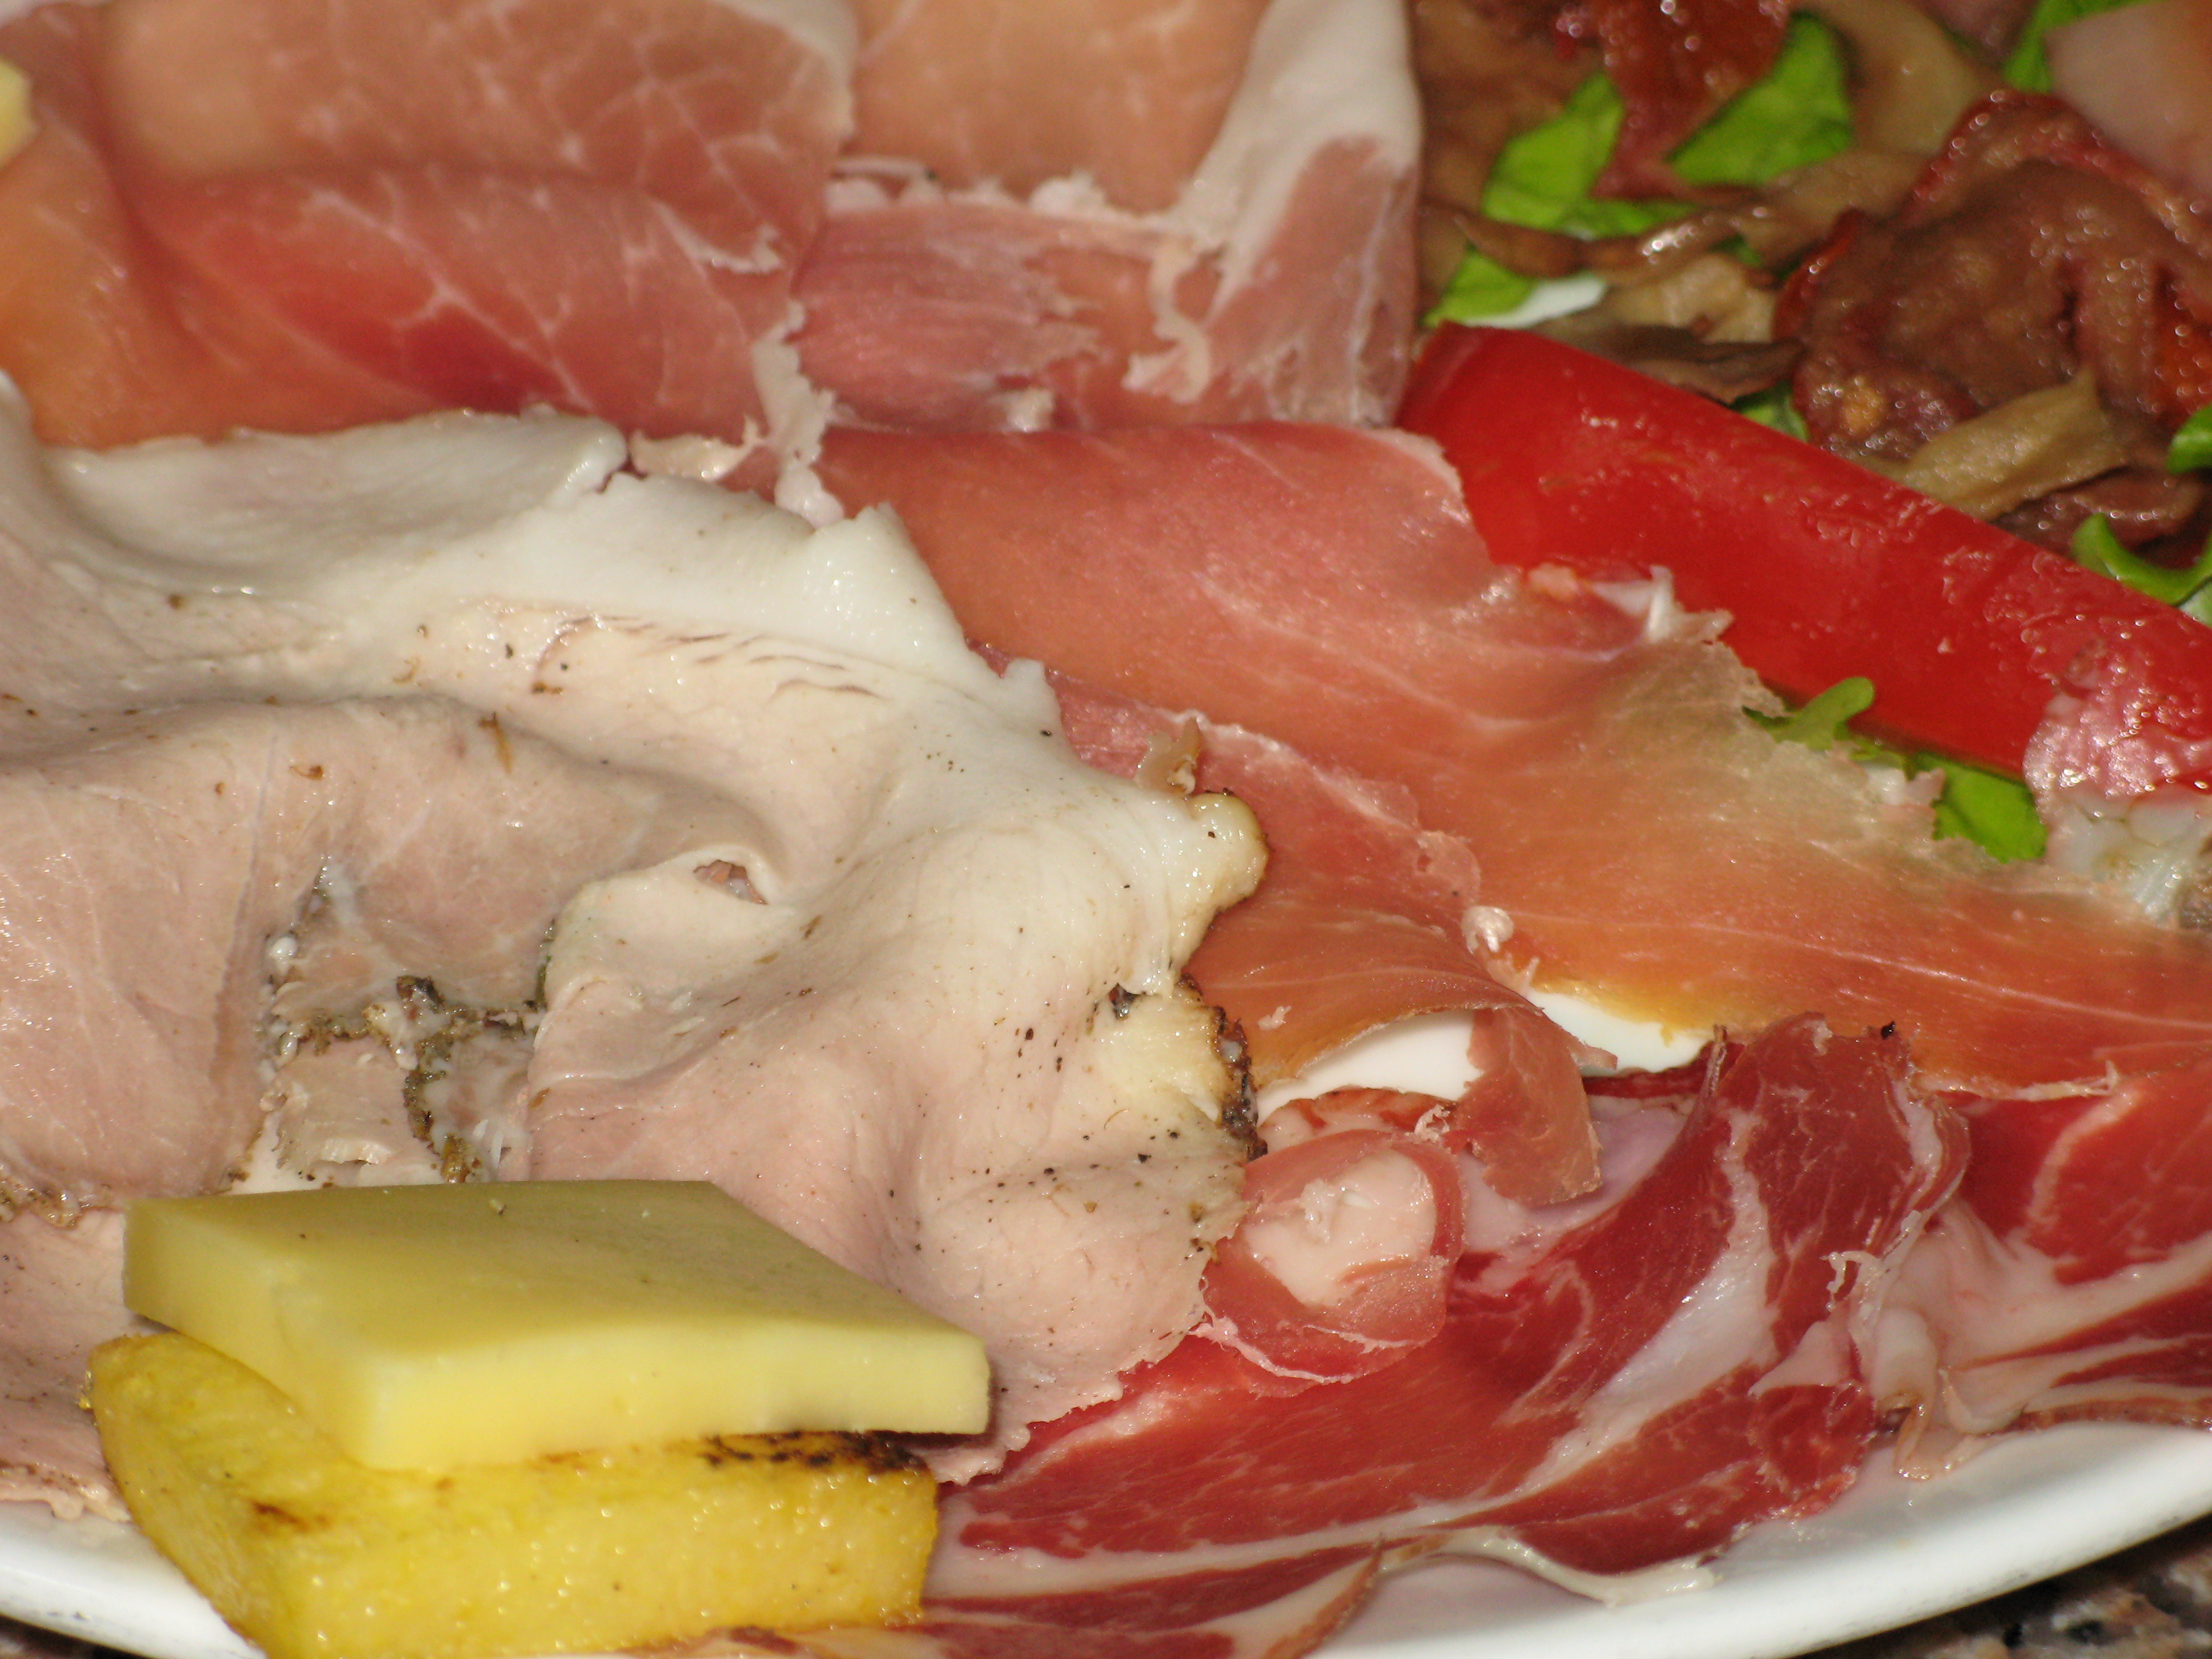 File:Antipasto all'italiana 2.